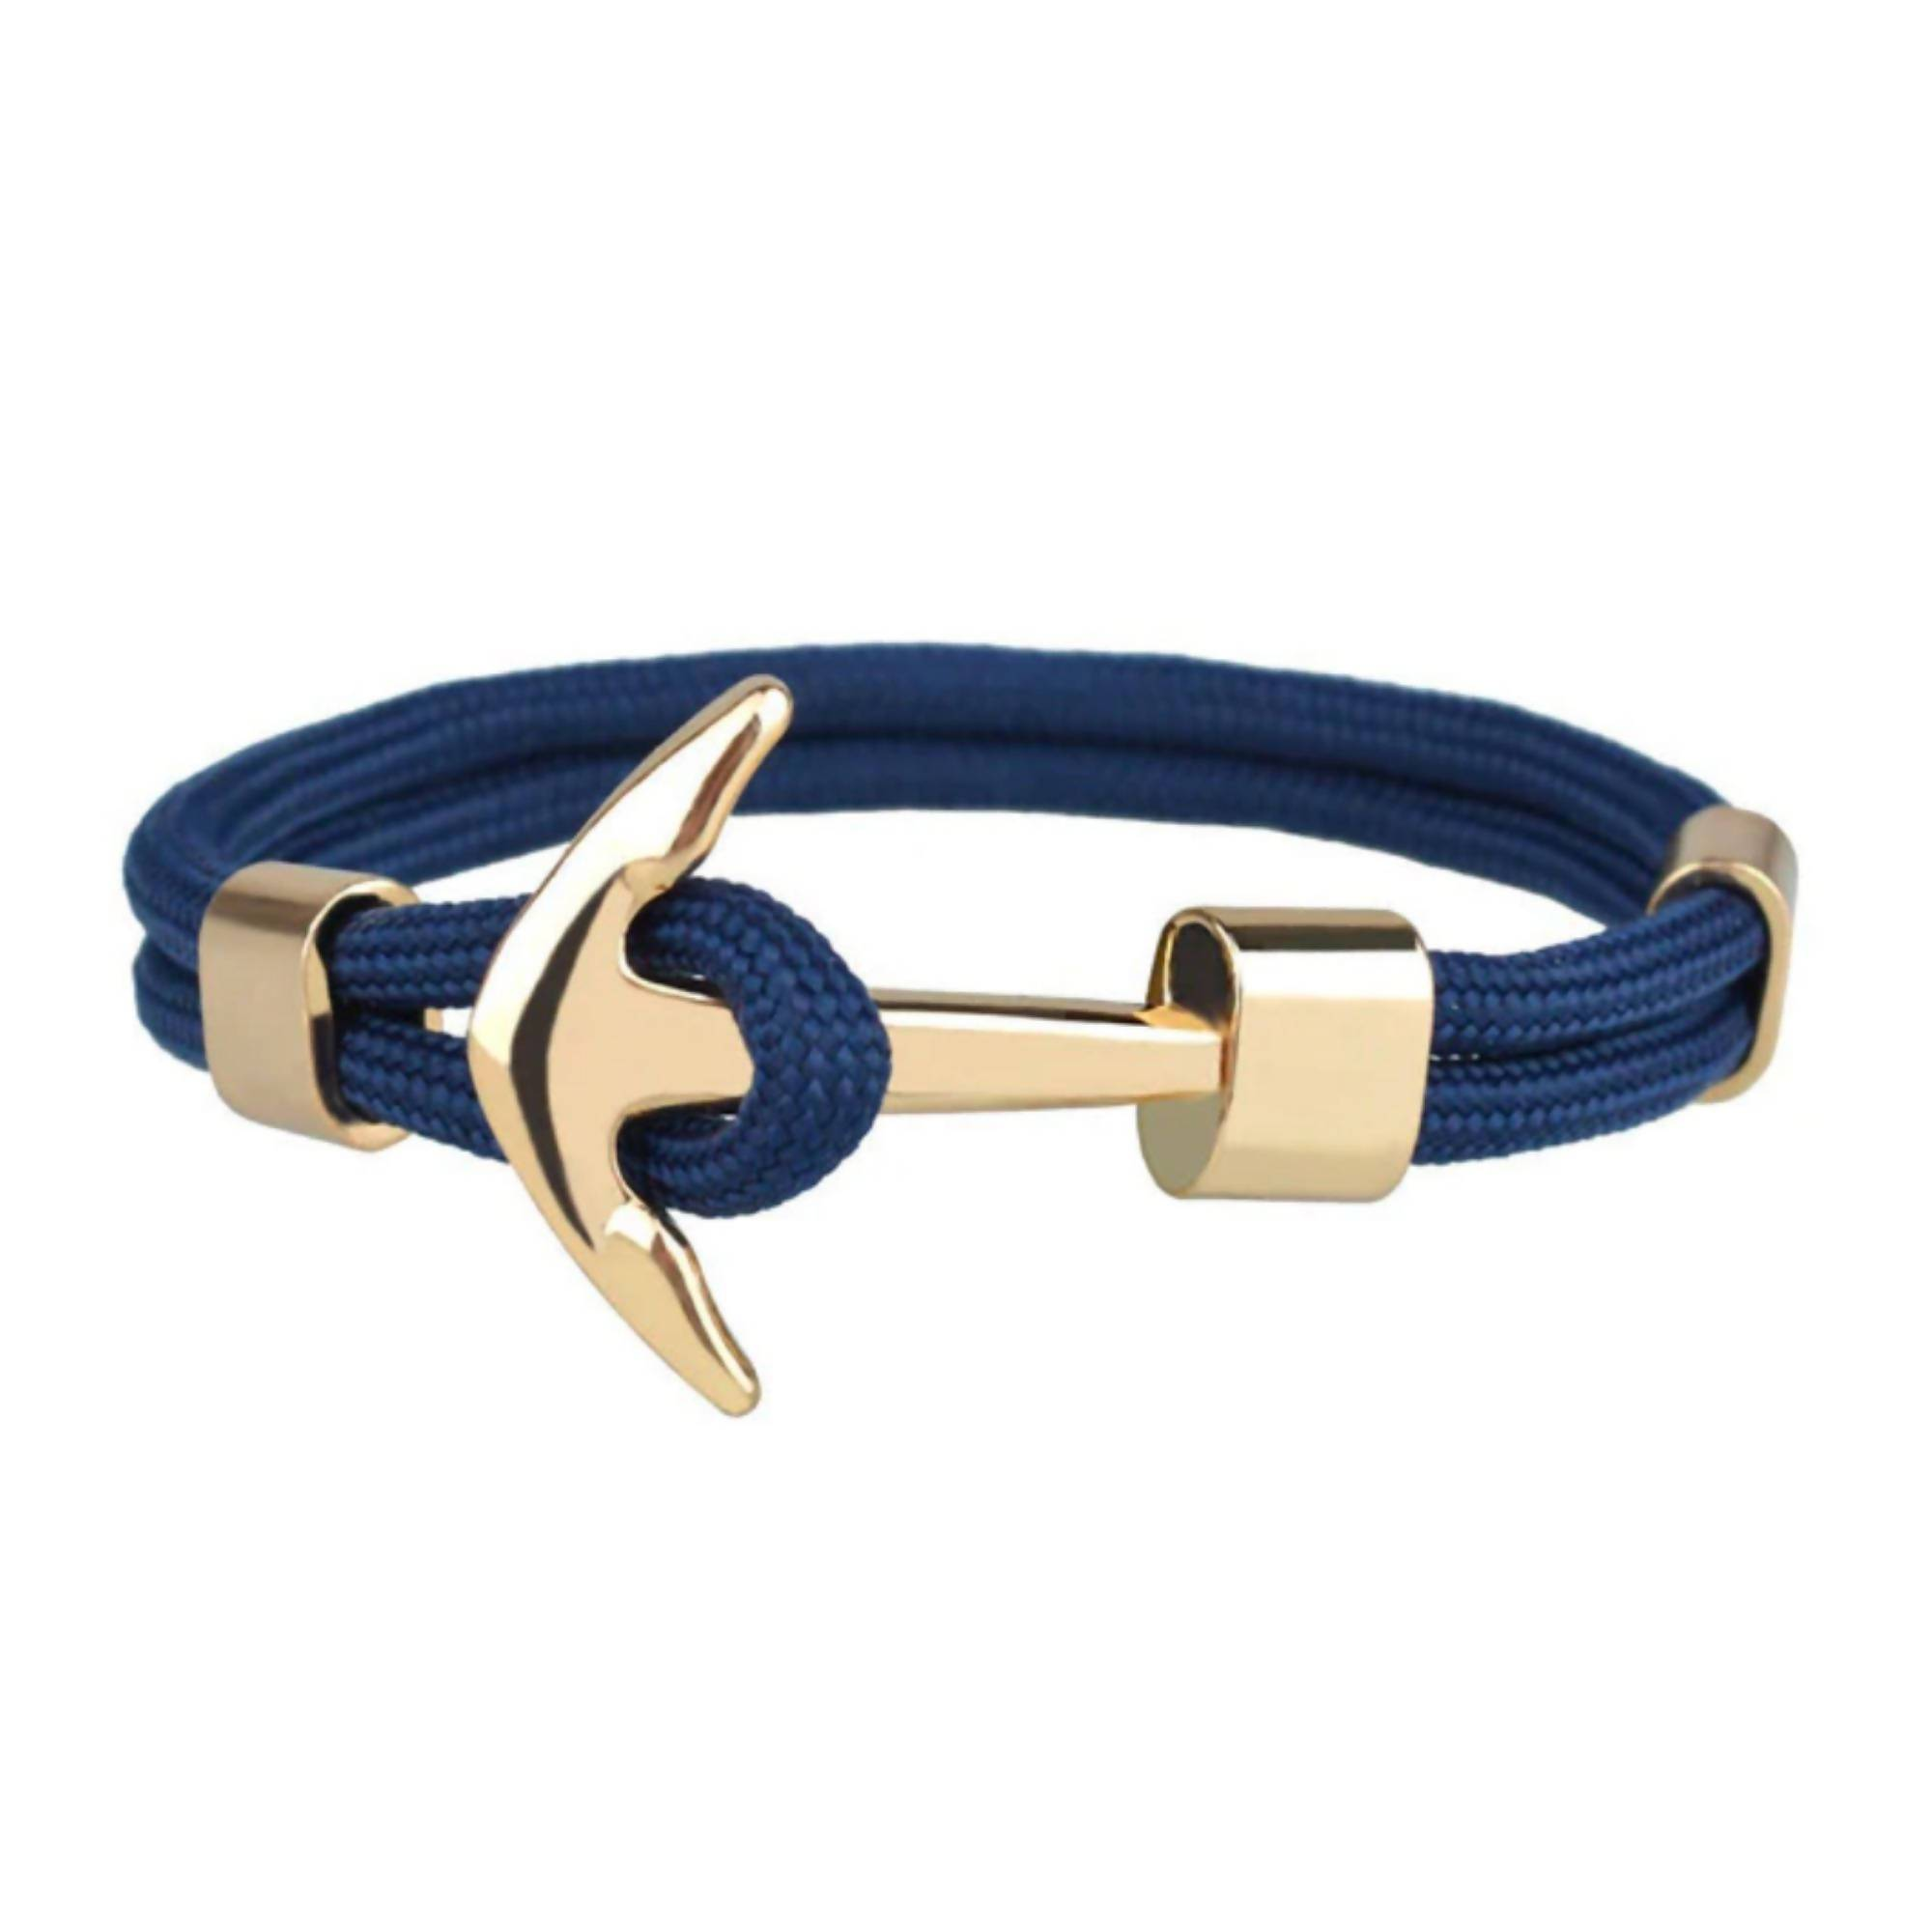 J. By Jee Basic Gold Anchor Bracelet (Blue Stripe) Men's Bracelets J By Jee